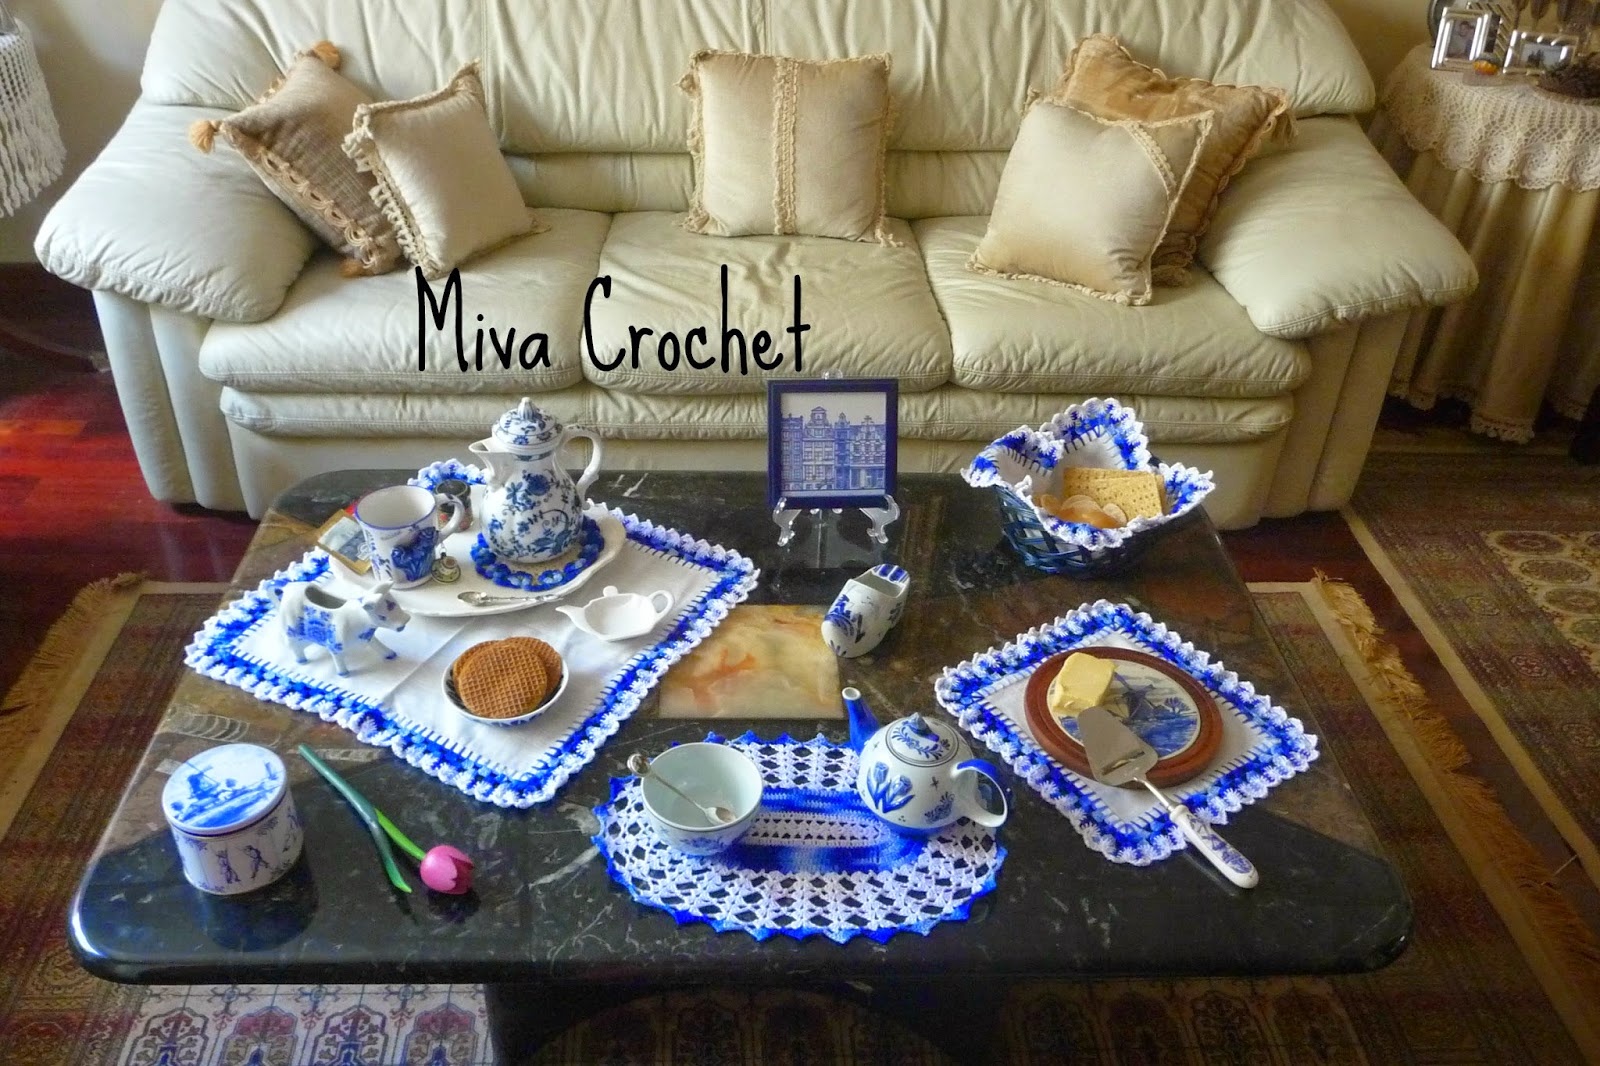 Miva crochet a little piece of holland on my coffee table un a little piece of holland on my coffee table un pedacito de holanda en mi mesa de centro fandeluxe Images